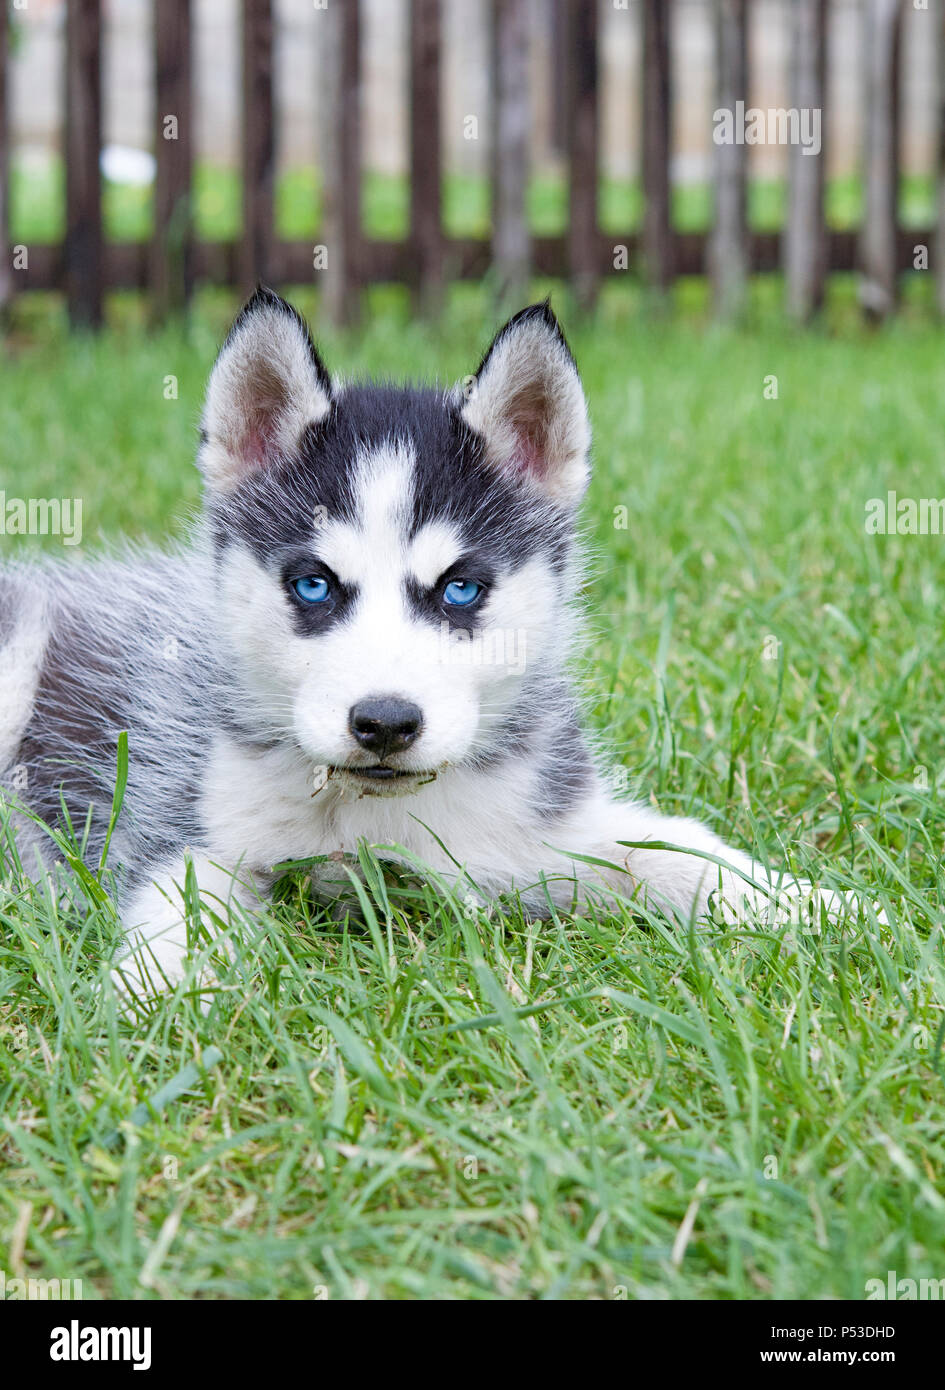 Cute Siberian Husky Puppy On Grass Stock Photo 209674233 Alamy